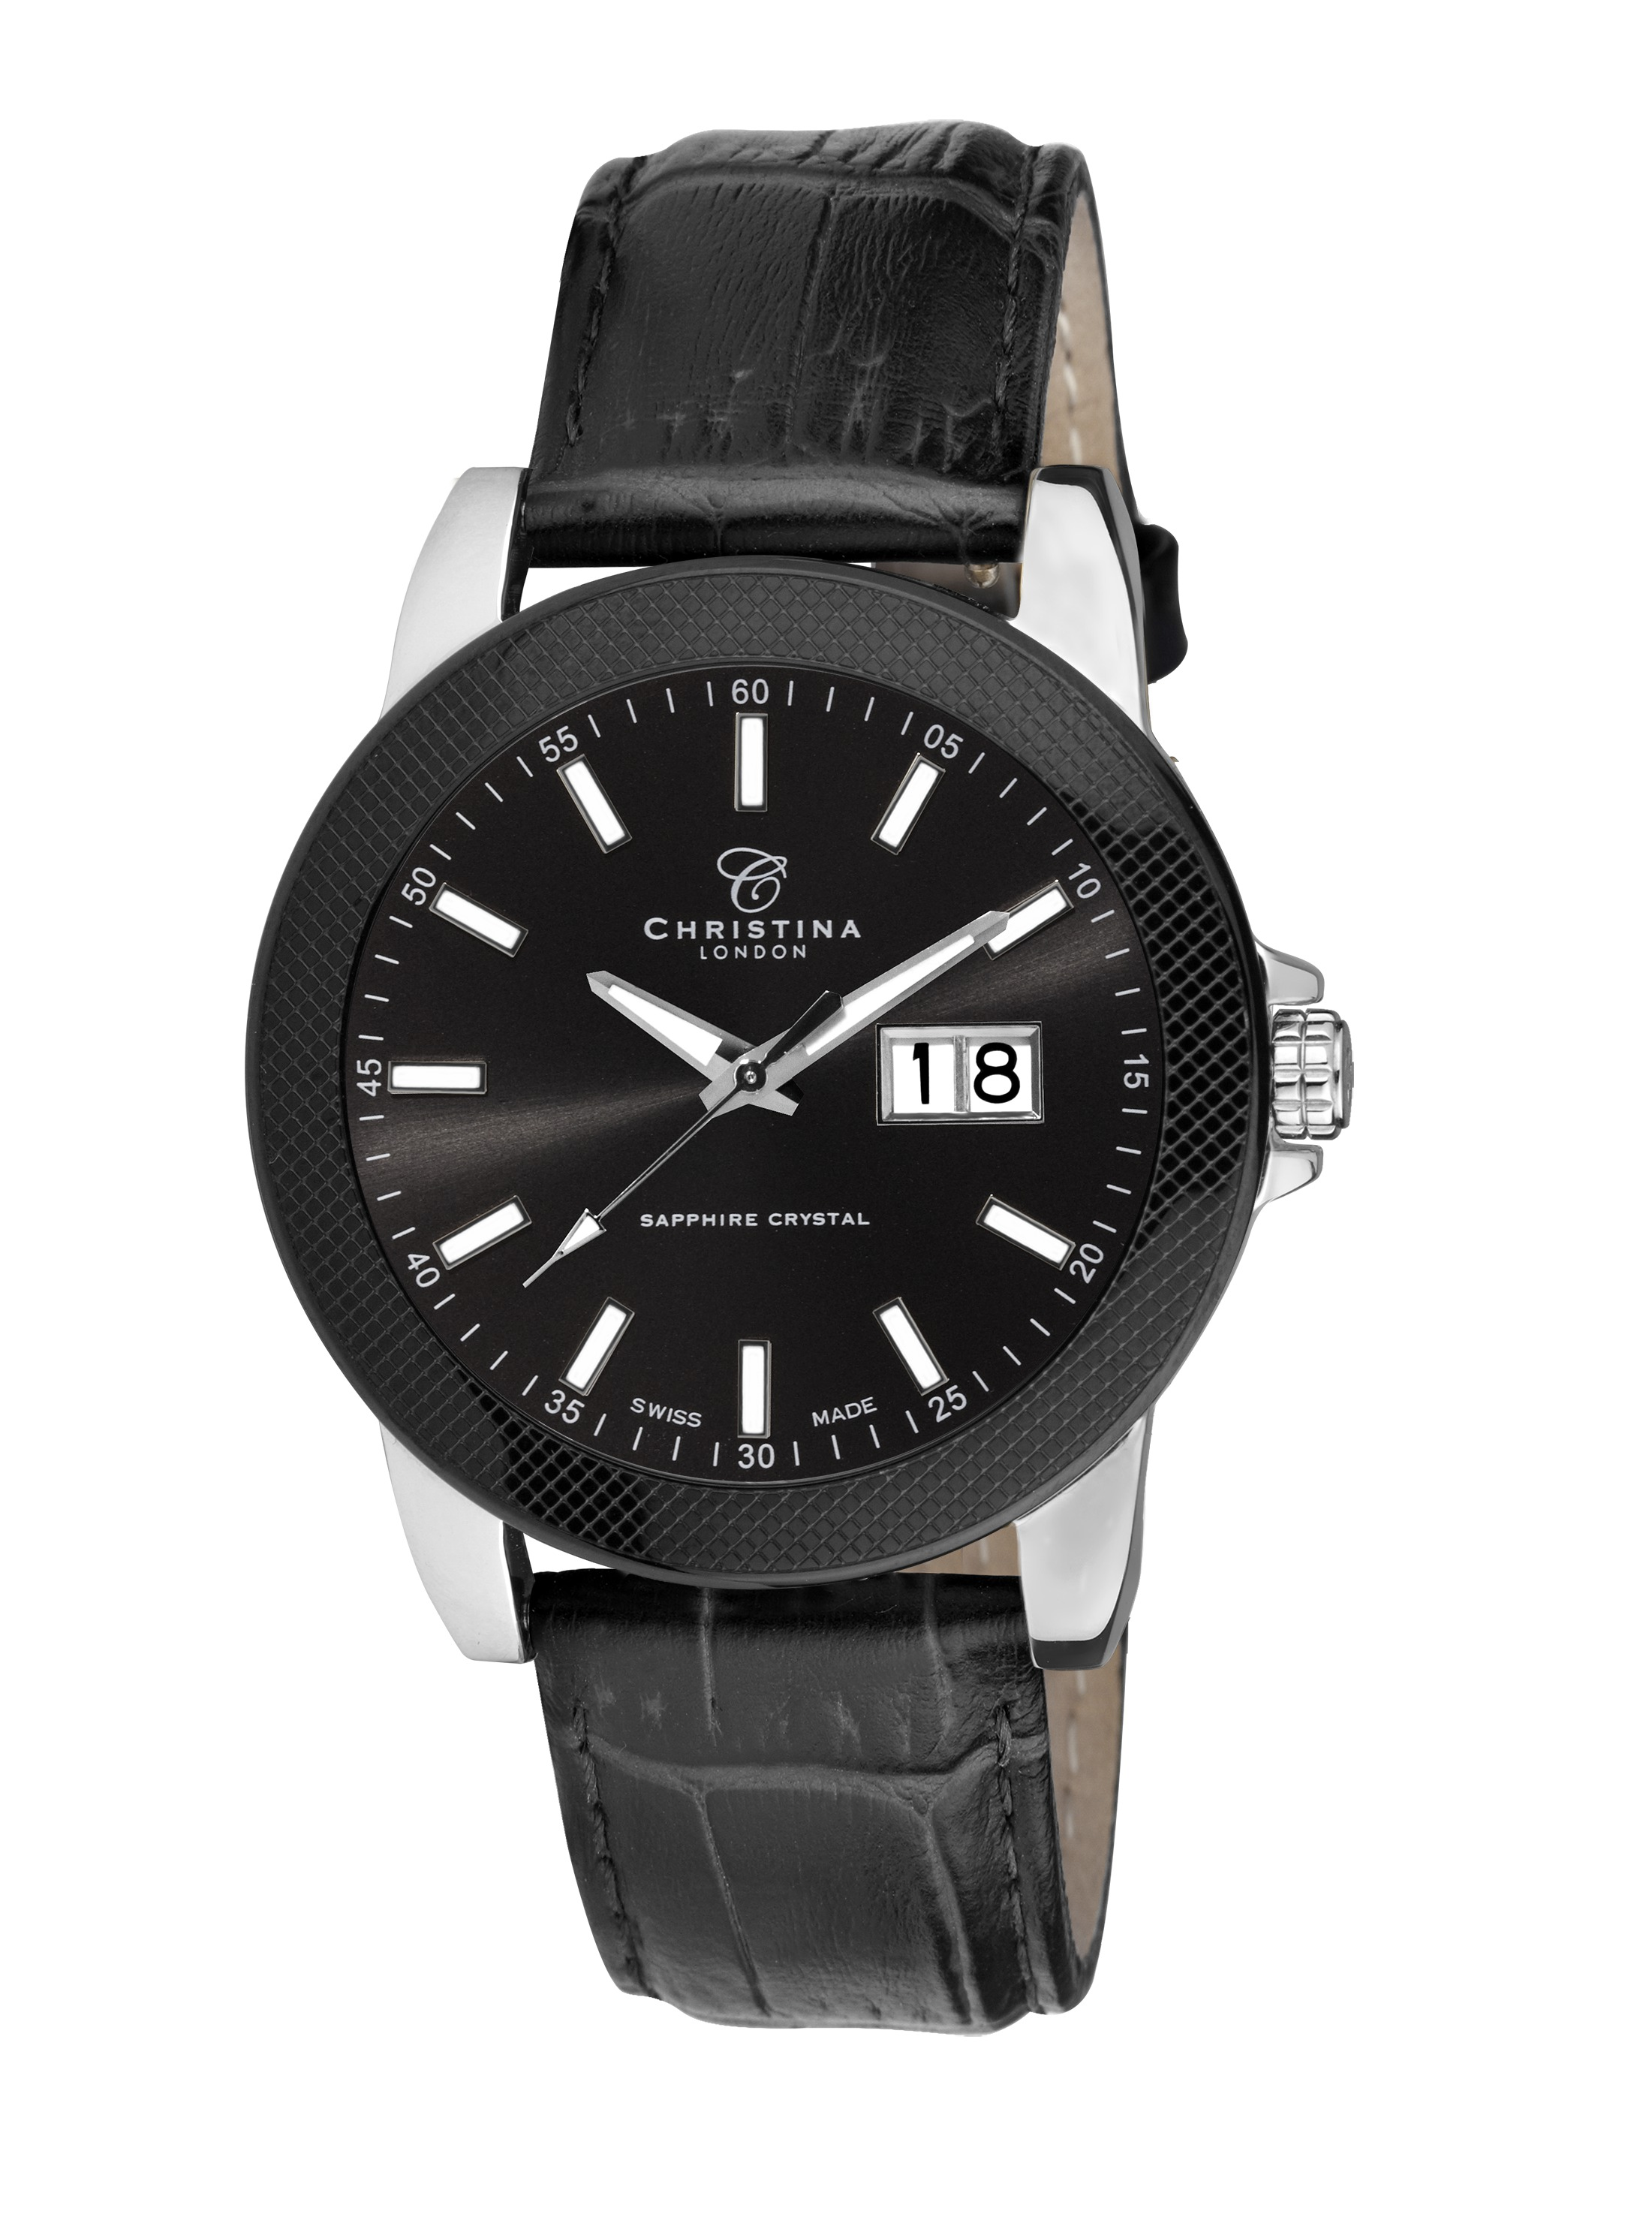 christina watches christina watches - 519sblbl-carbon